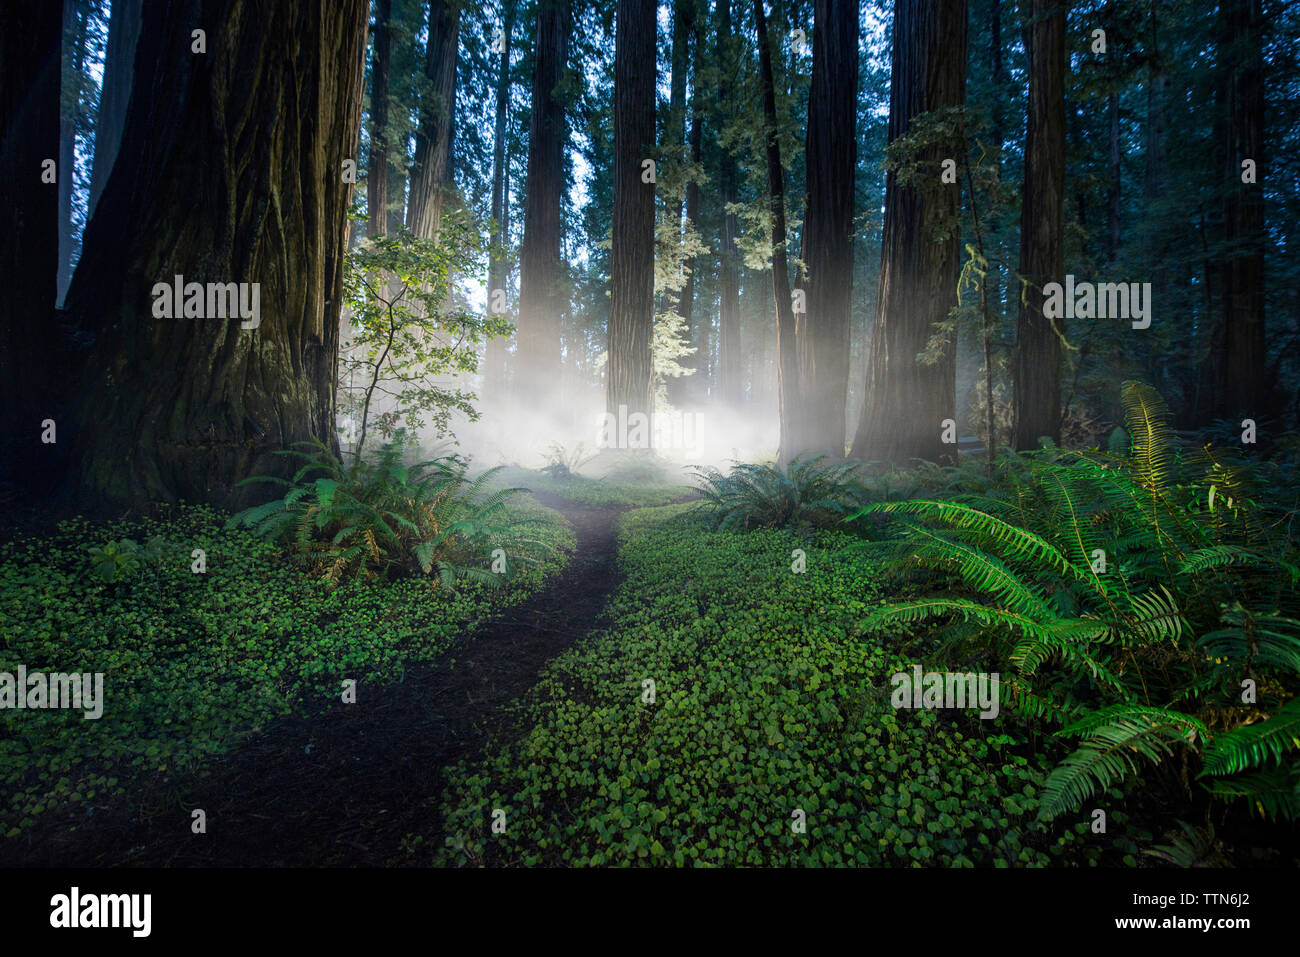 Scenic view of forest at Jedediah Smith Redwoods State Park - Stock Image